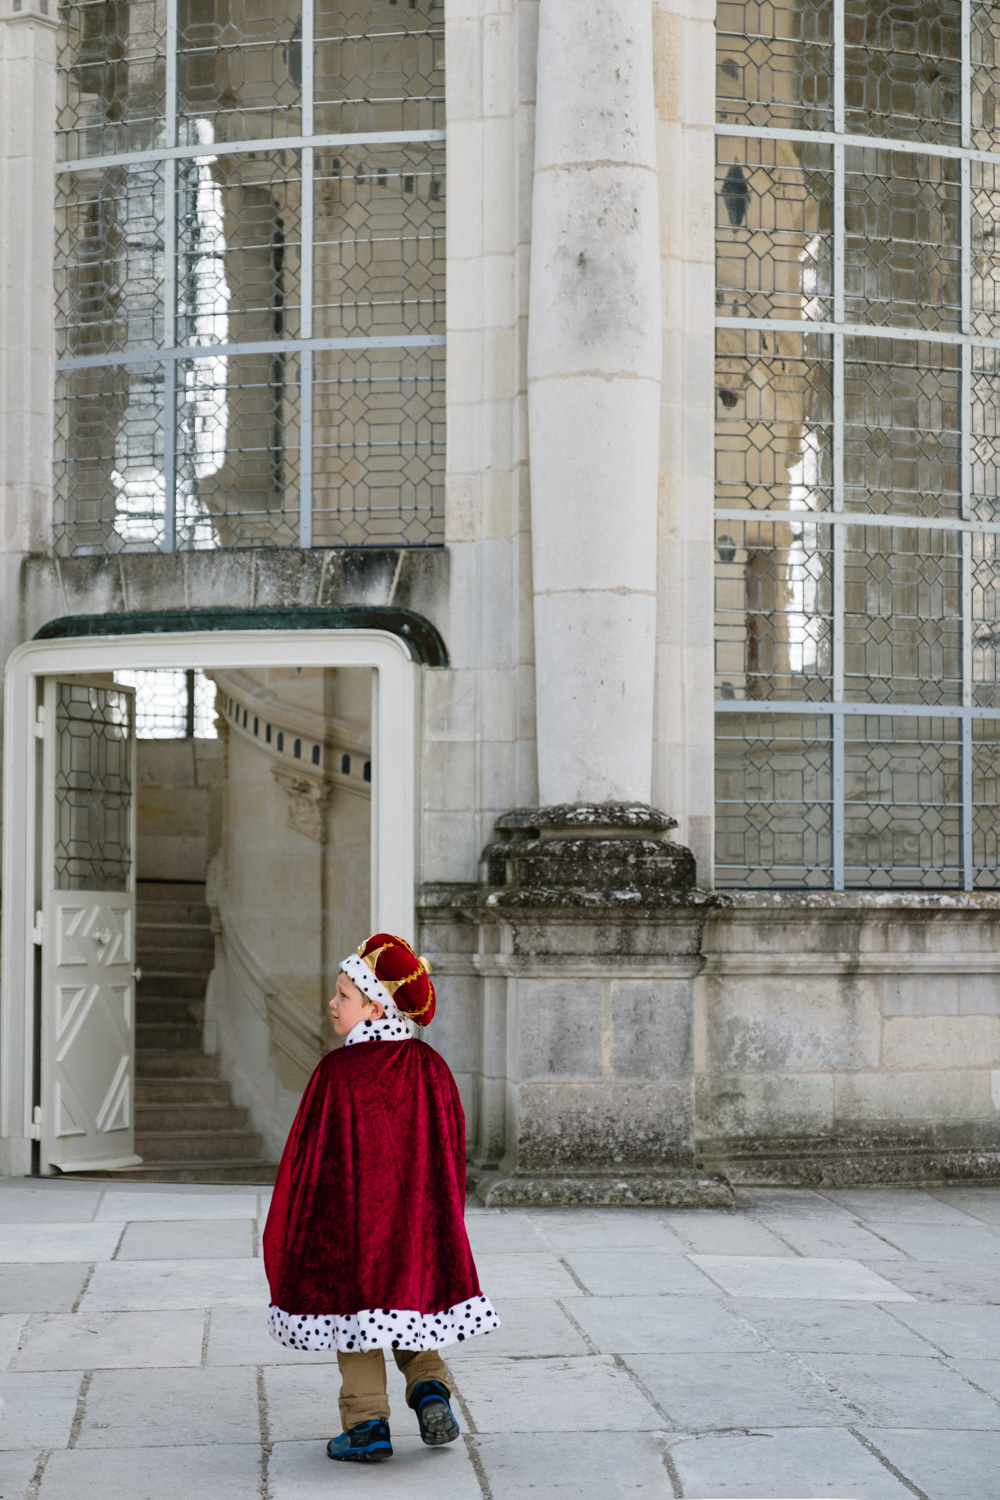 The King of Chambord